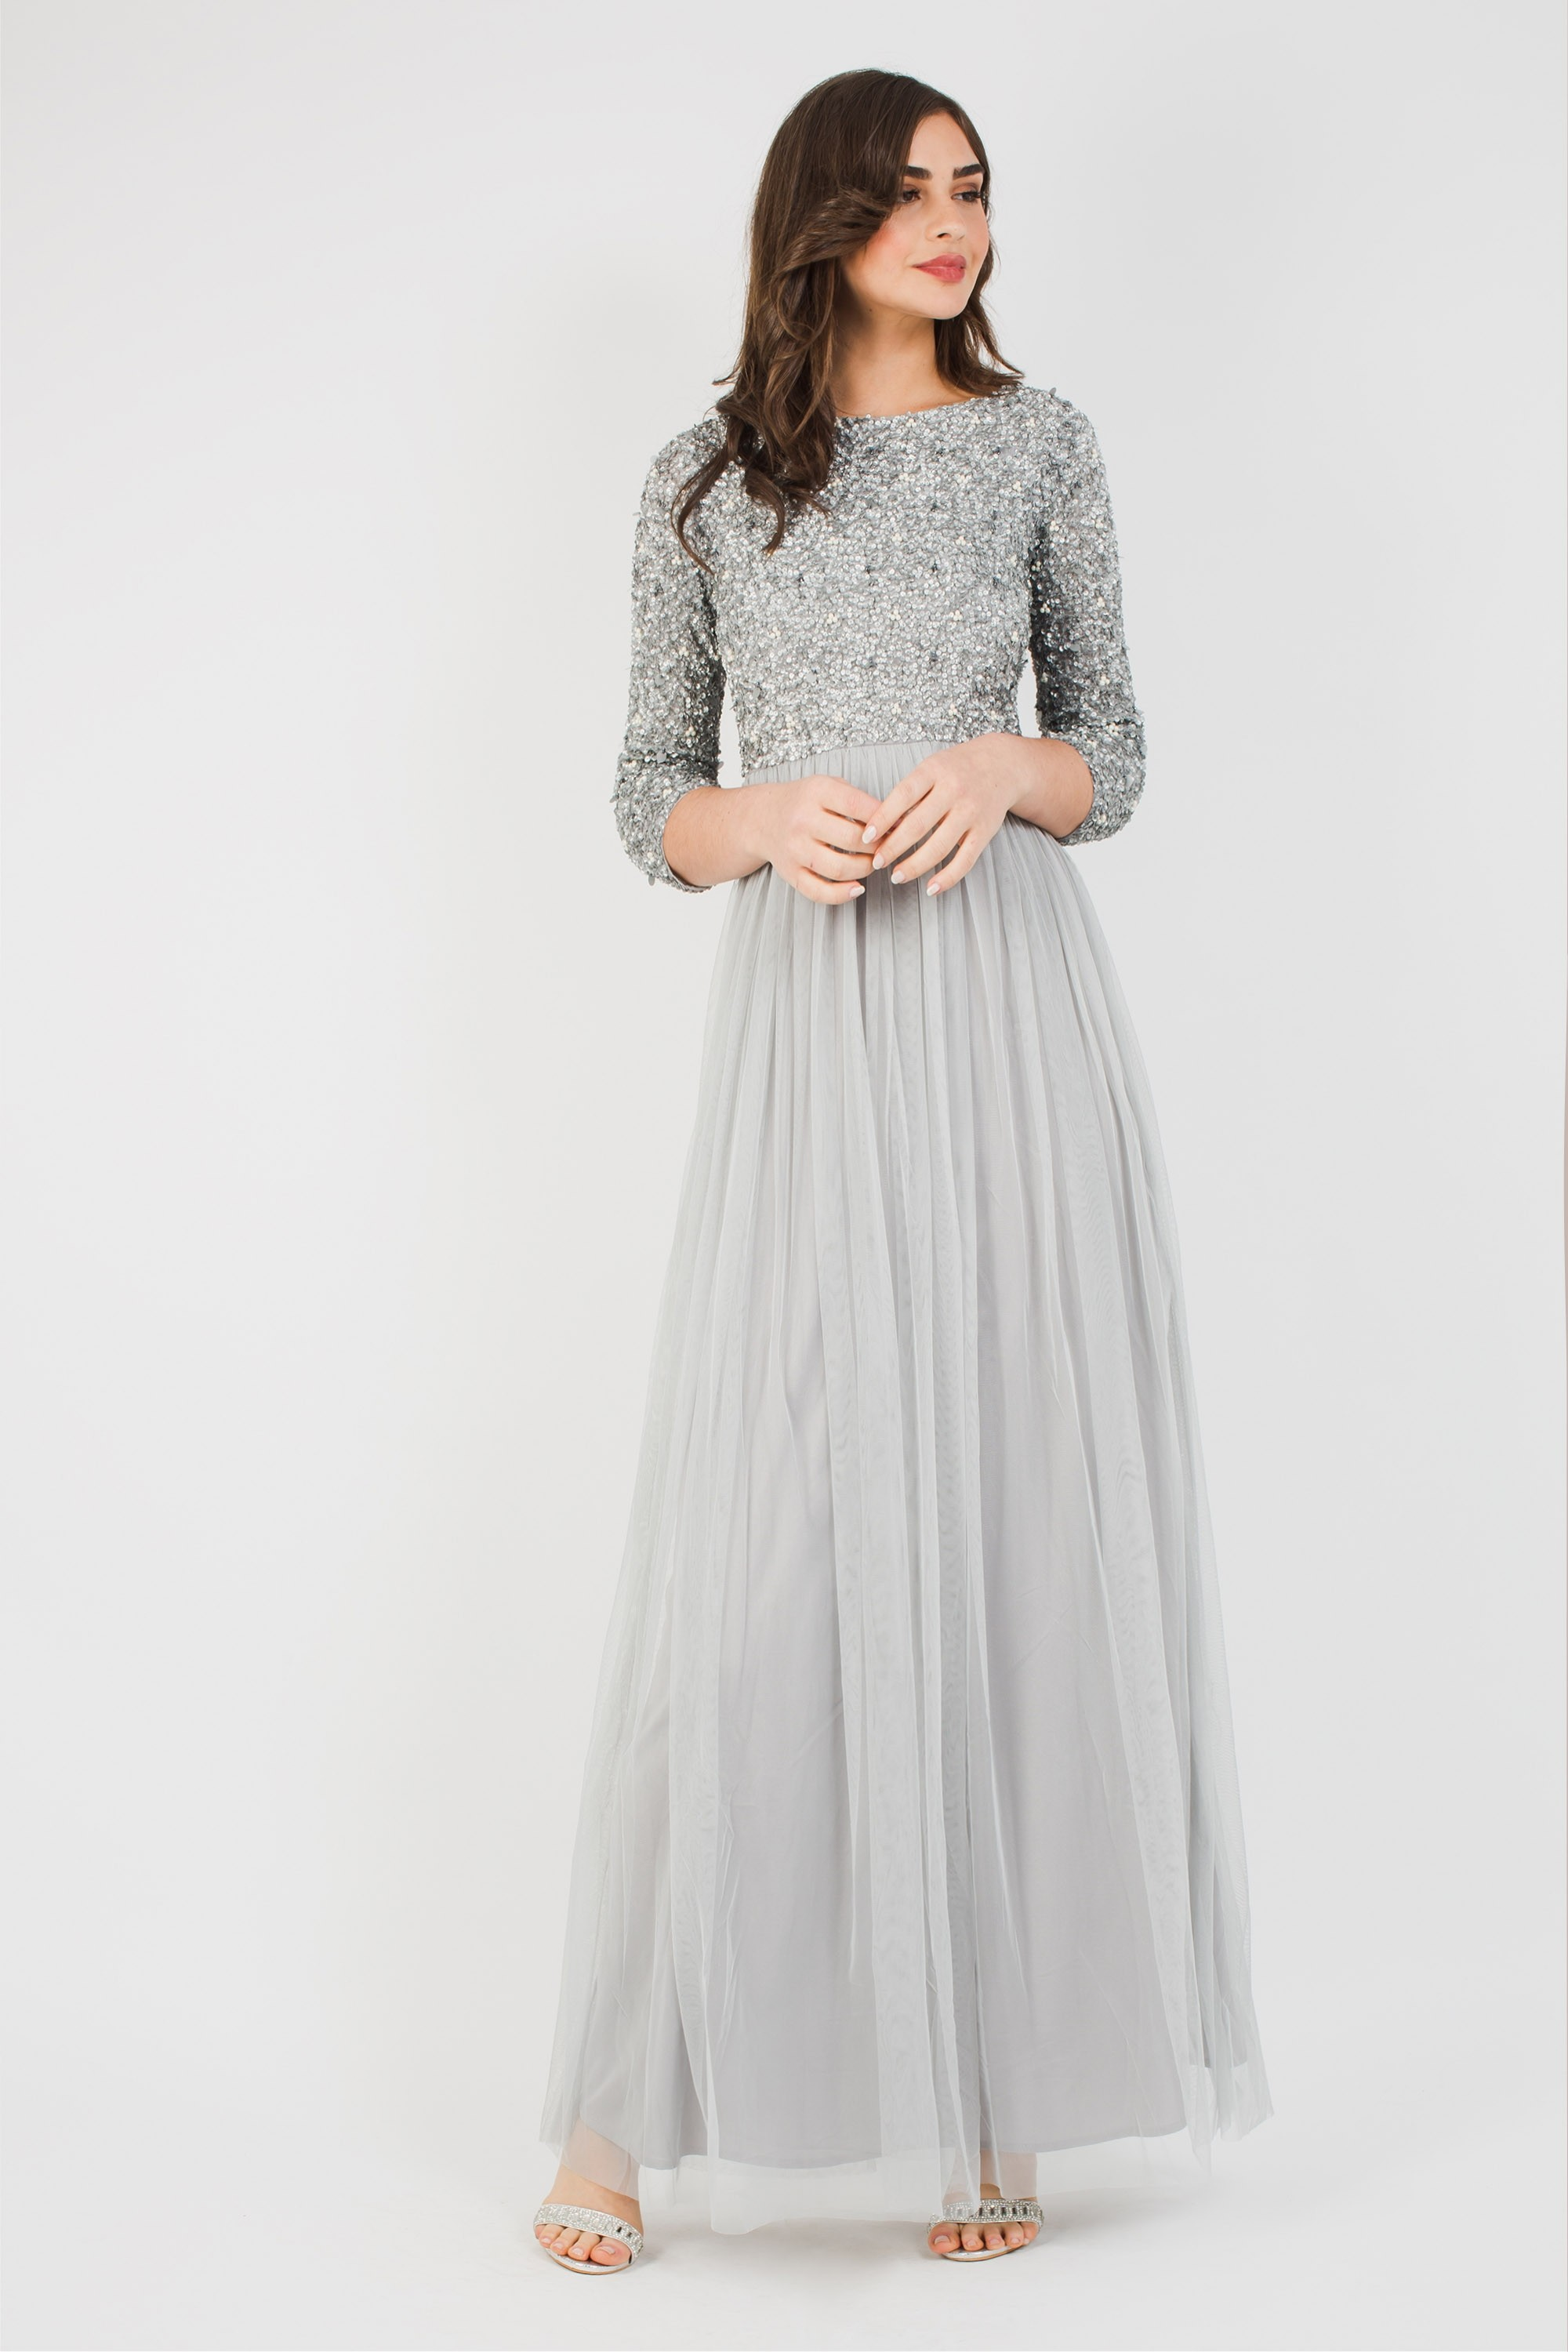 d6e6ee05a6c LACE   BEADS PICASSO 3 4 SLEEVED GREY EMBELLISHED MAXI DRESS